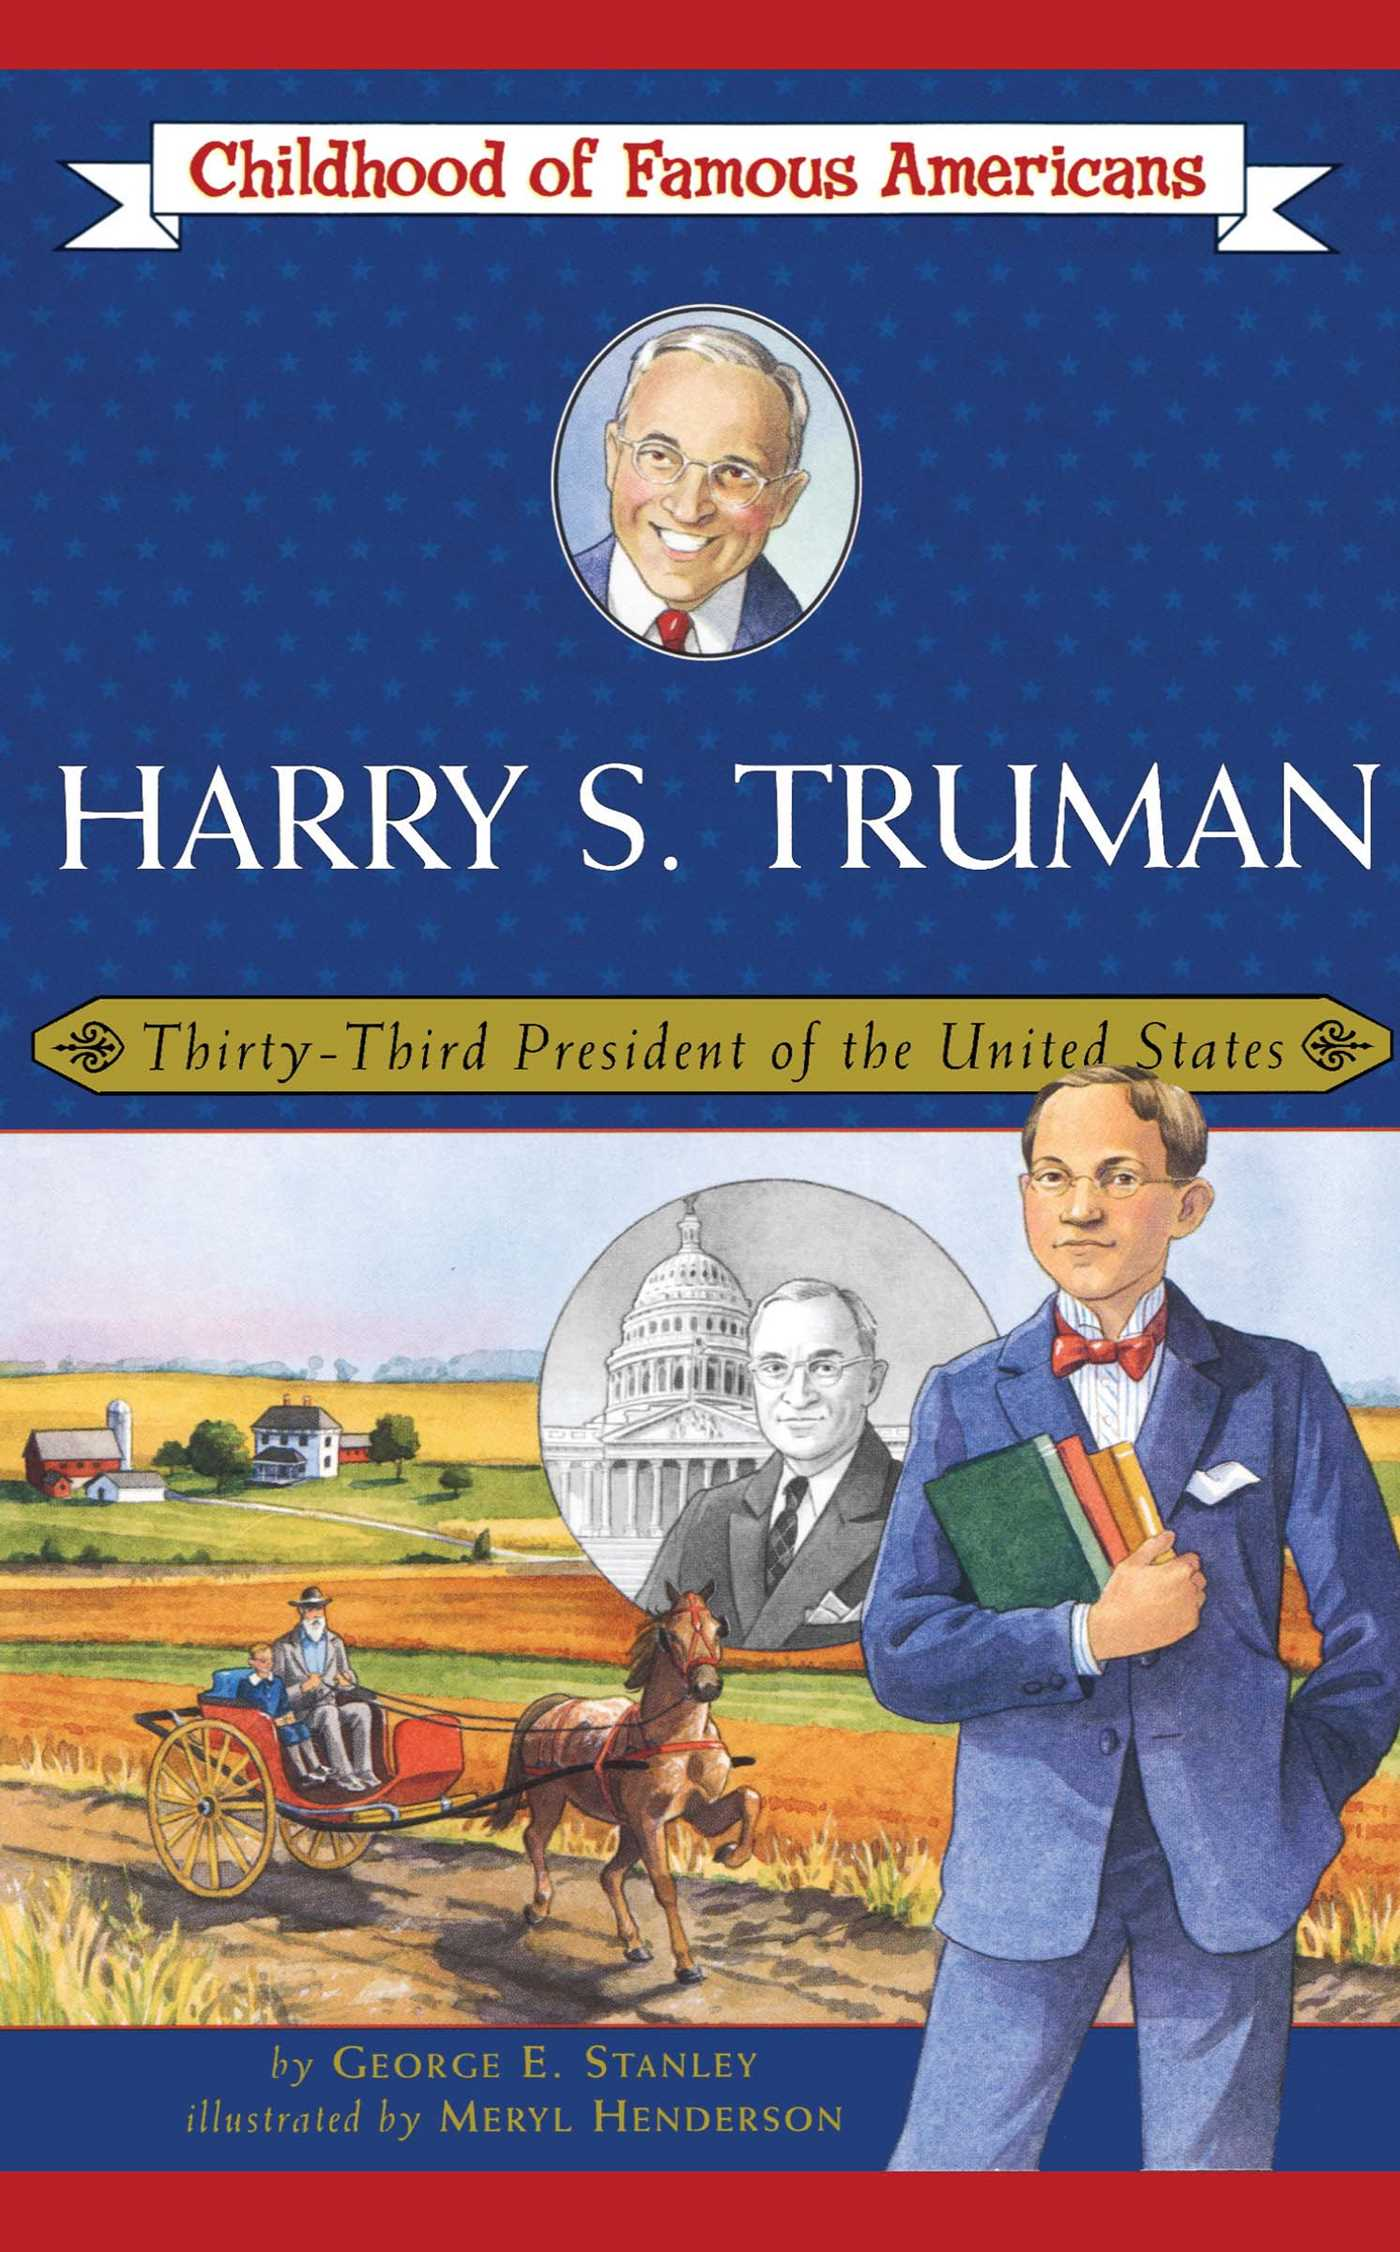 Harry s truman 9780689862472 hr